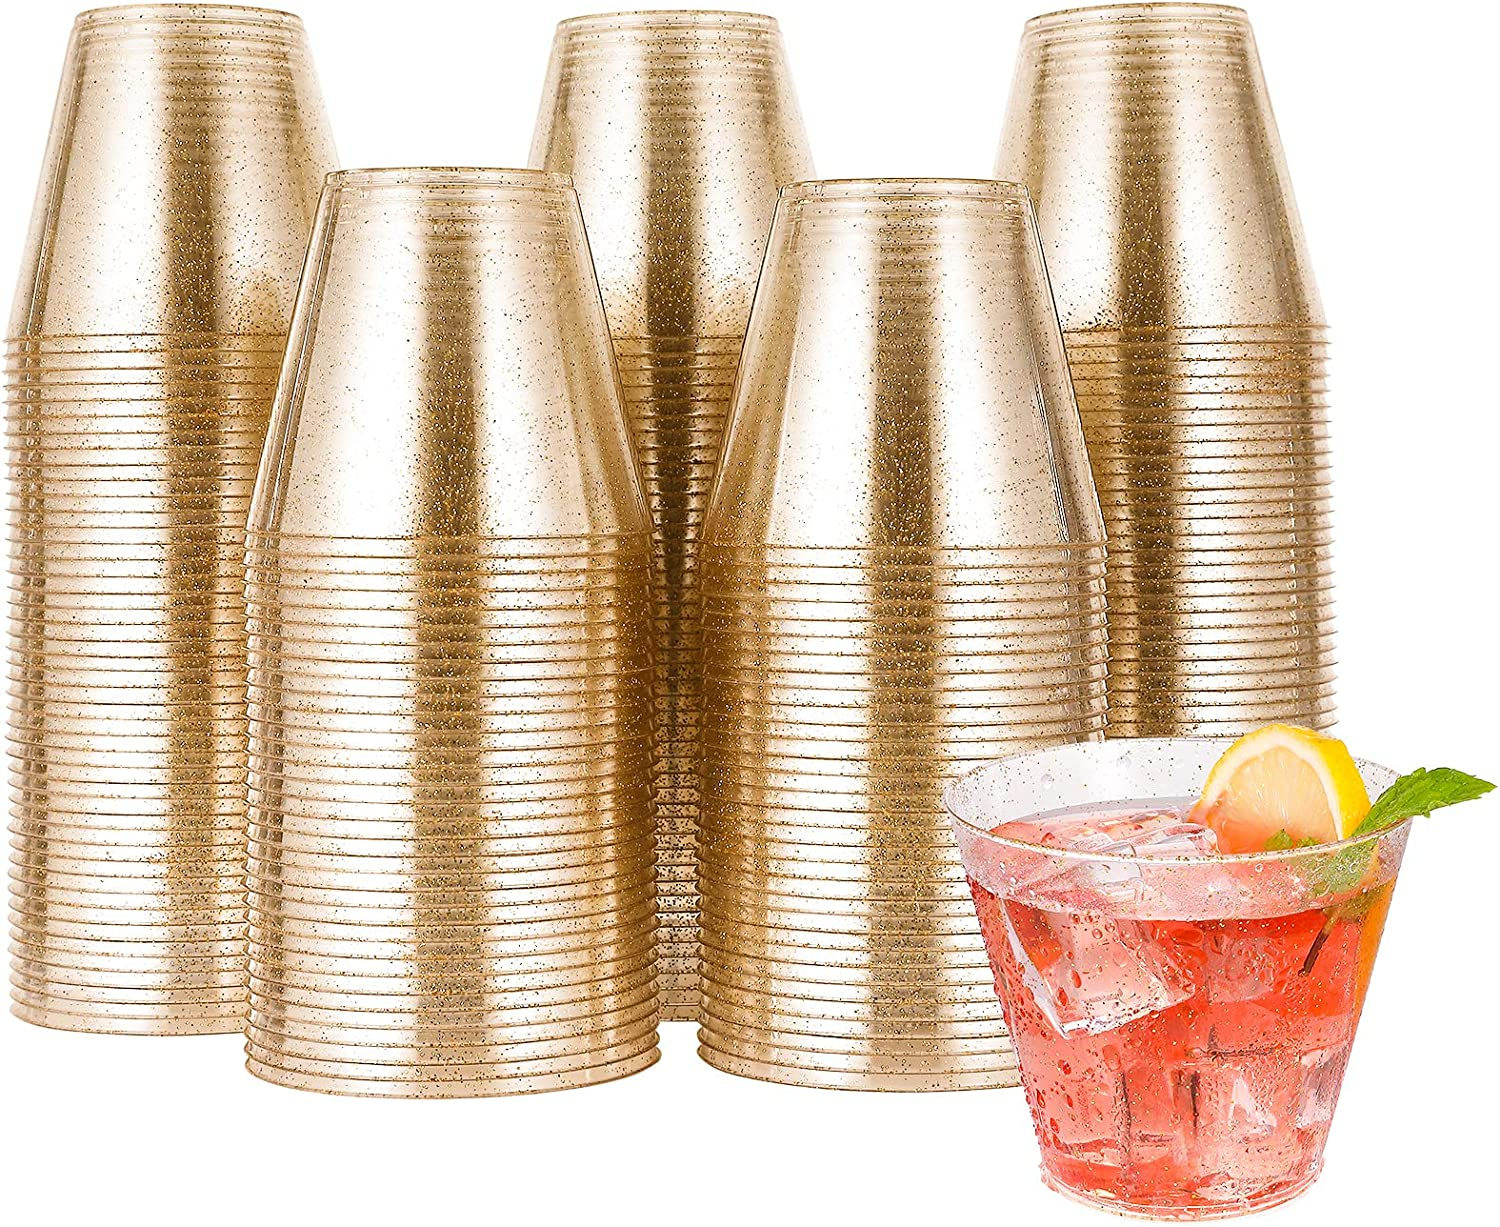 200pcs 9OZ Glitter Plastic Cups,Disposable Gold Cups,Clear Plastic Tumblers,Gold Glitter Cups,Disposable Cups for Wedding,Thanksgiving, Christmas Party